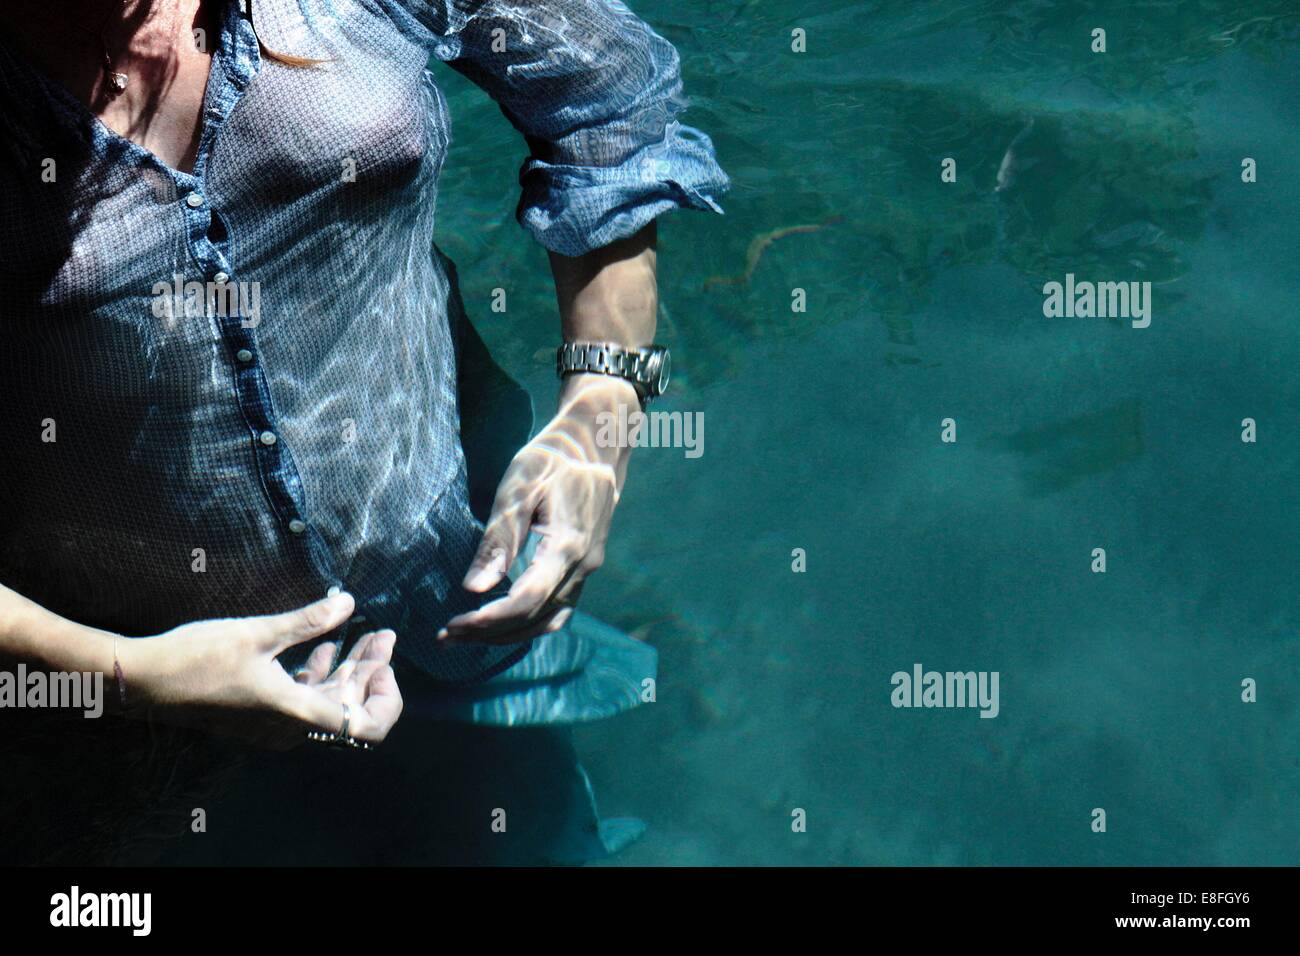 fully clothed stock photos & fully clothed stock images - alamy